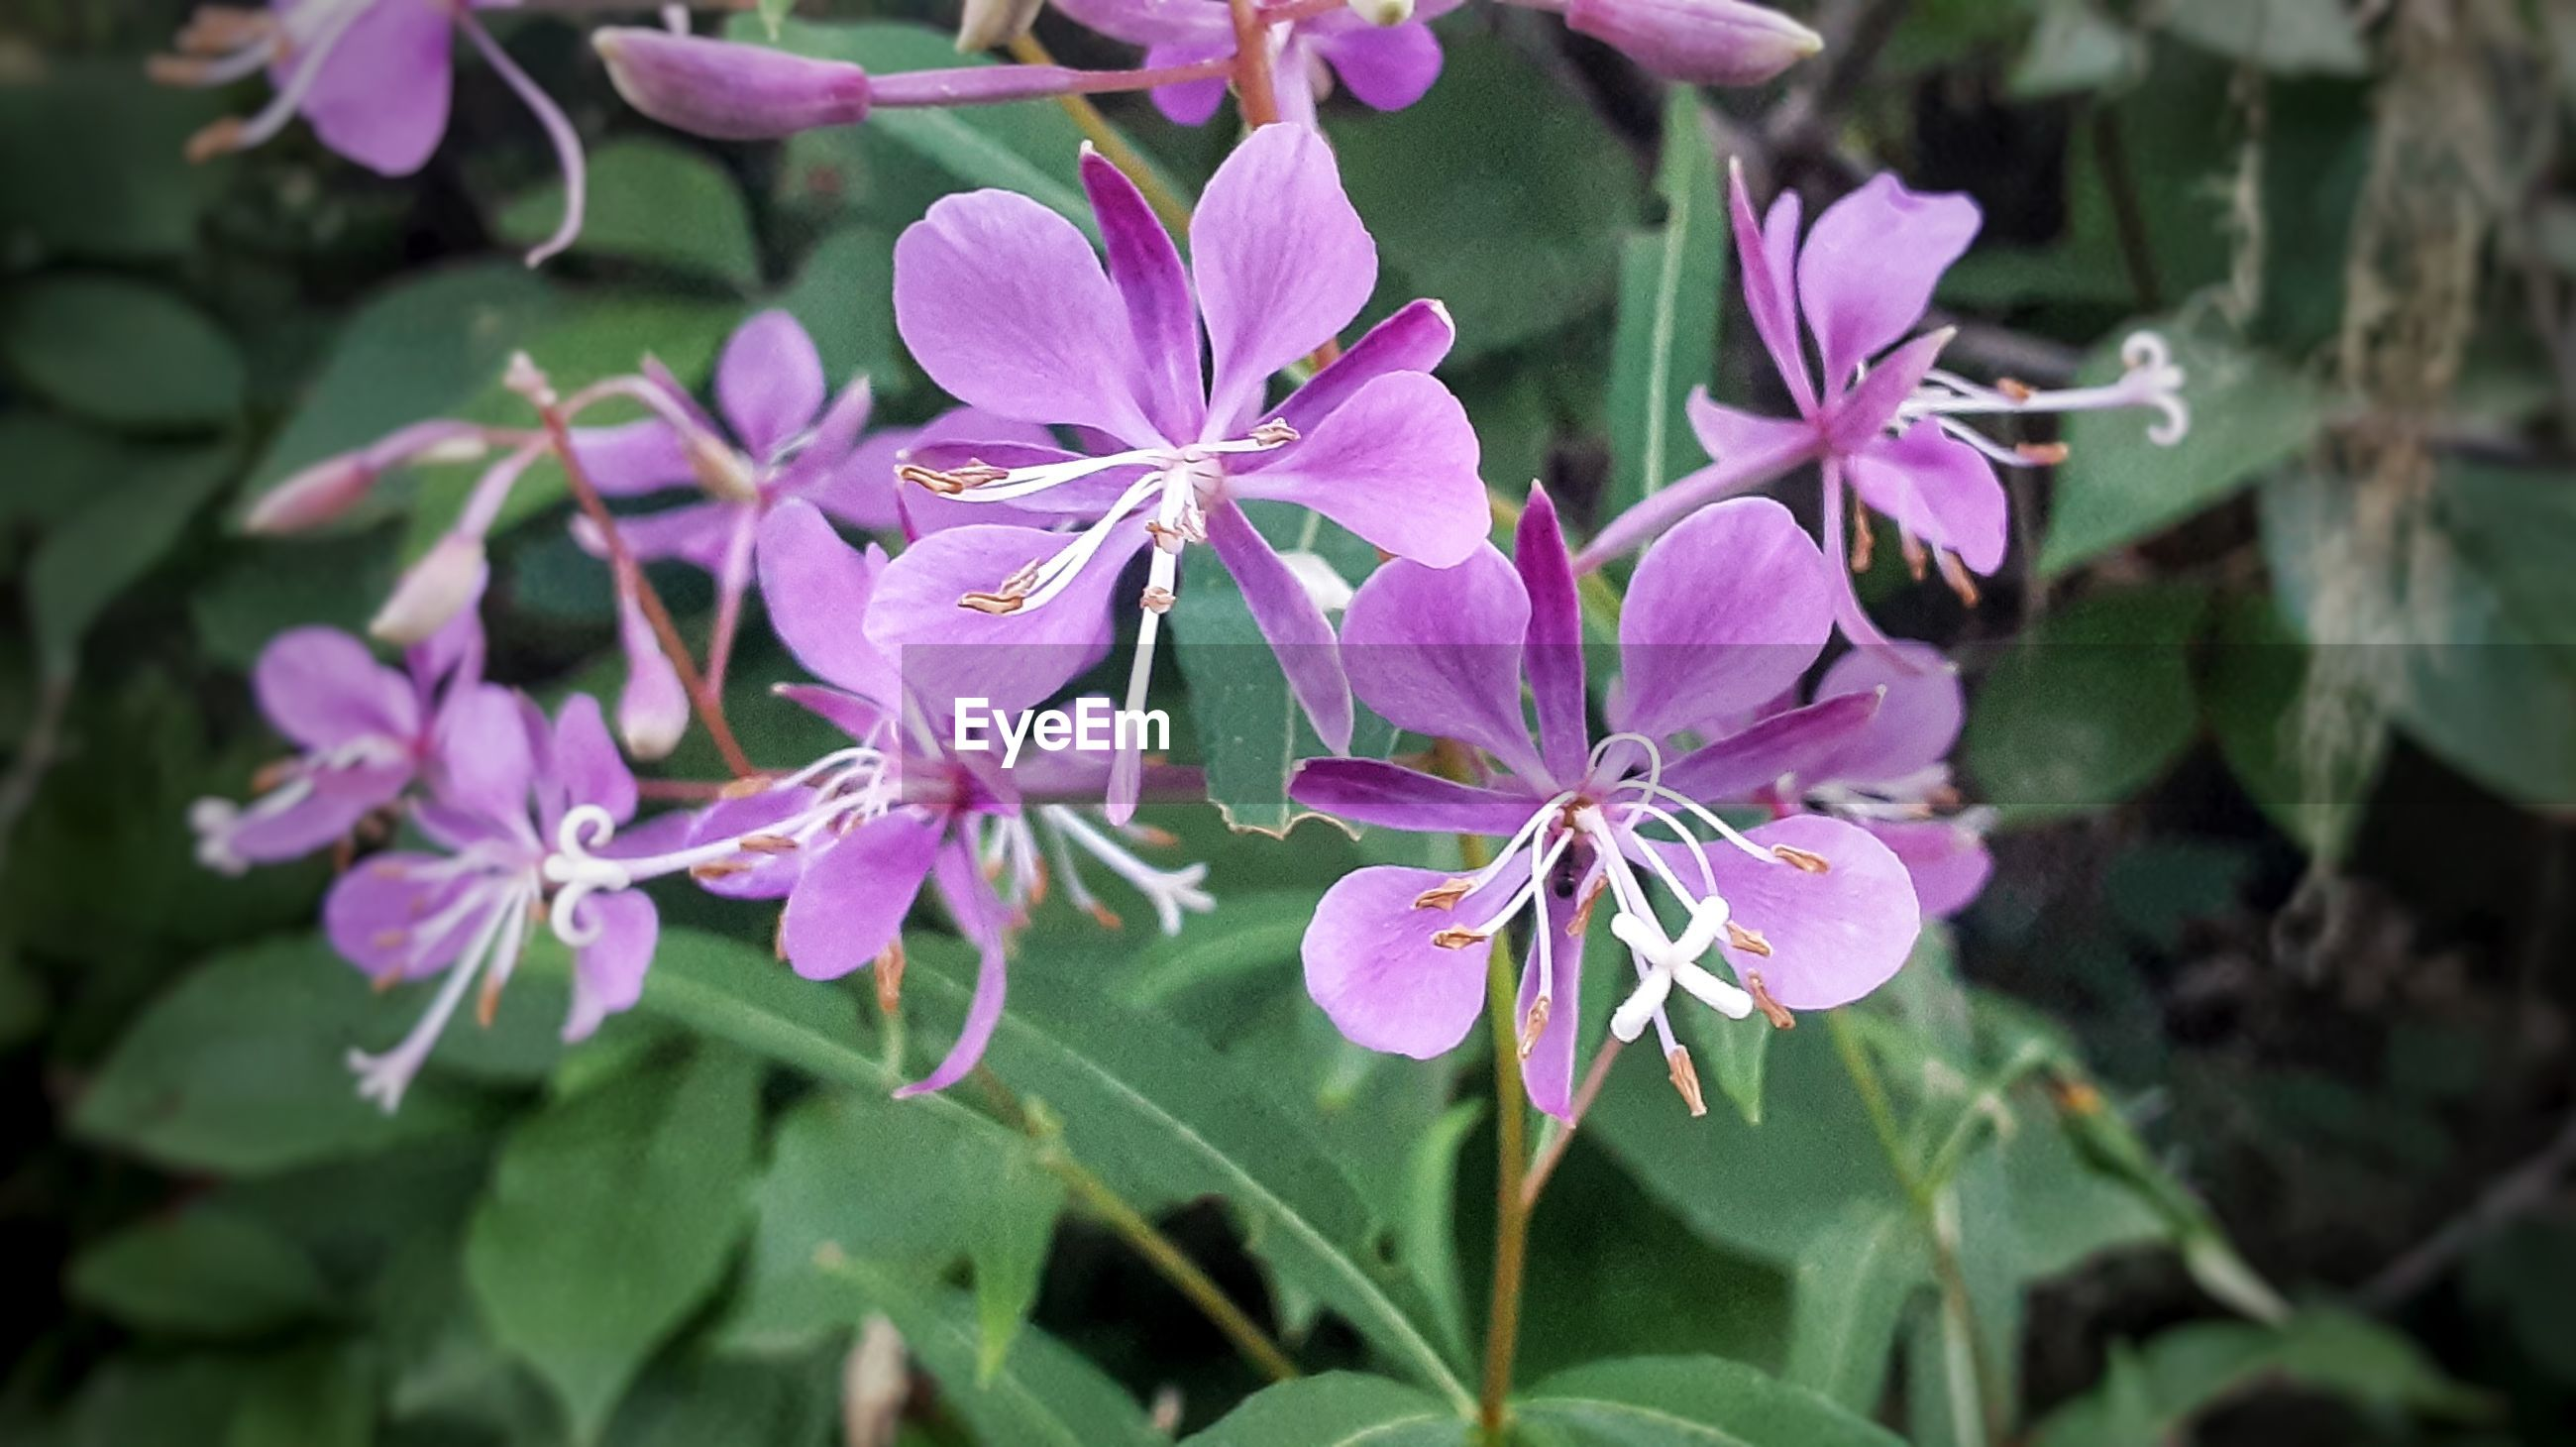 CLOSE-UP OF FRESH PINK FLOWERING PLANT